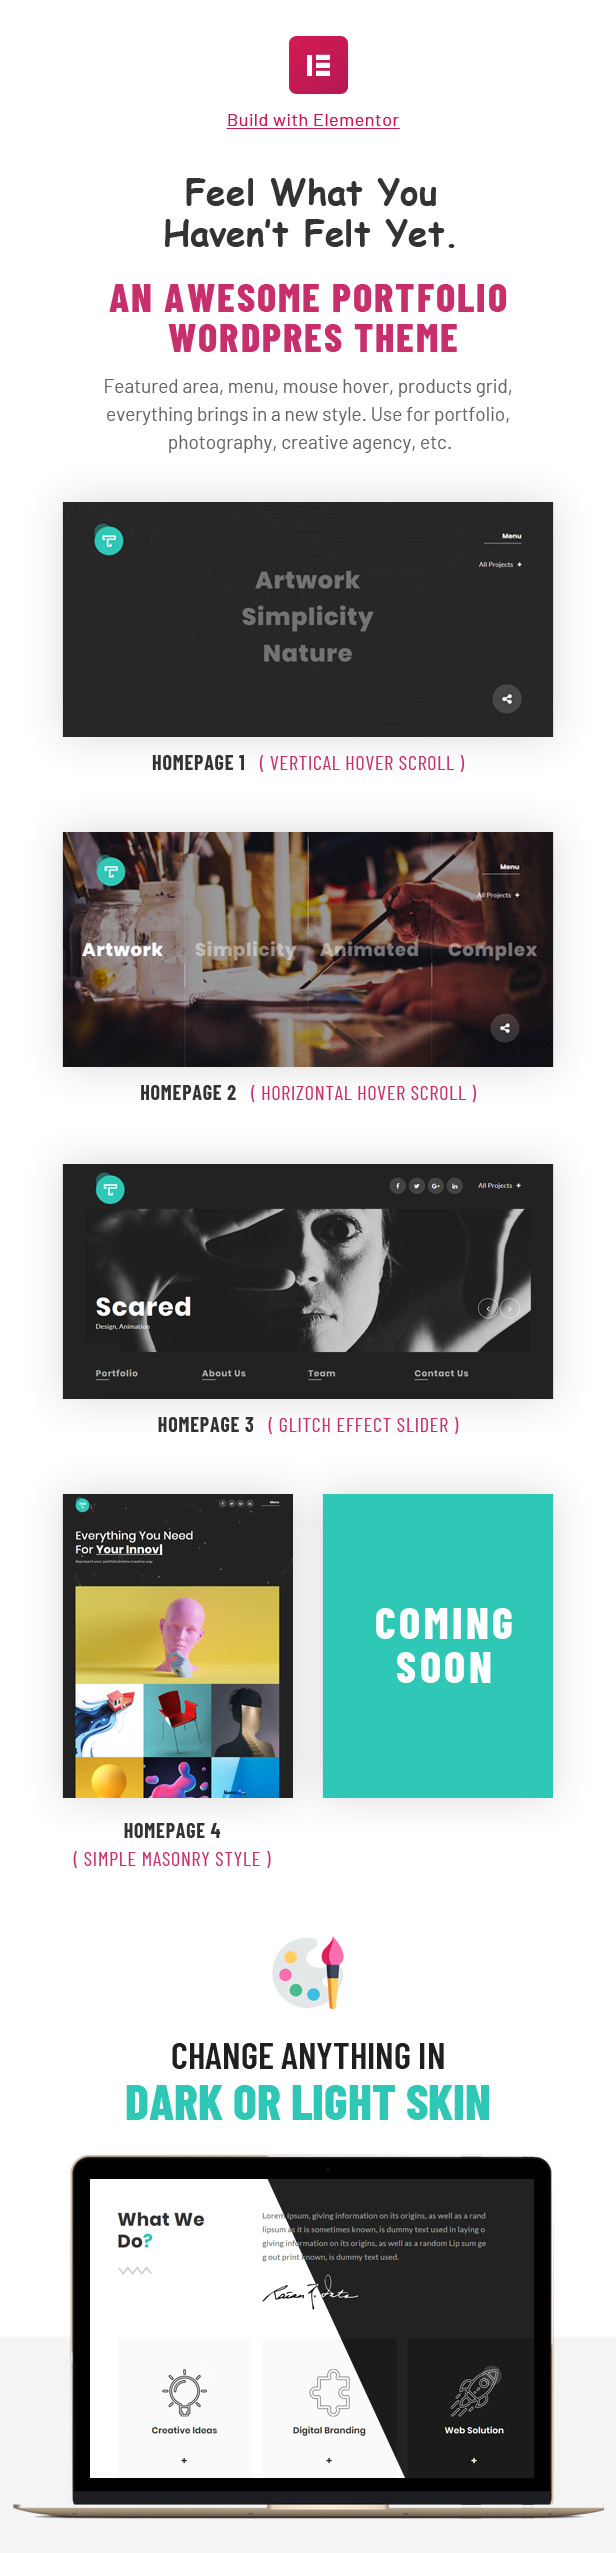 Tacon - A Showcase Portfolio WordPress Theme - 2